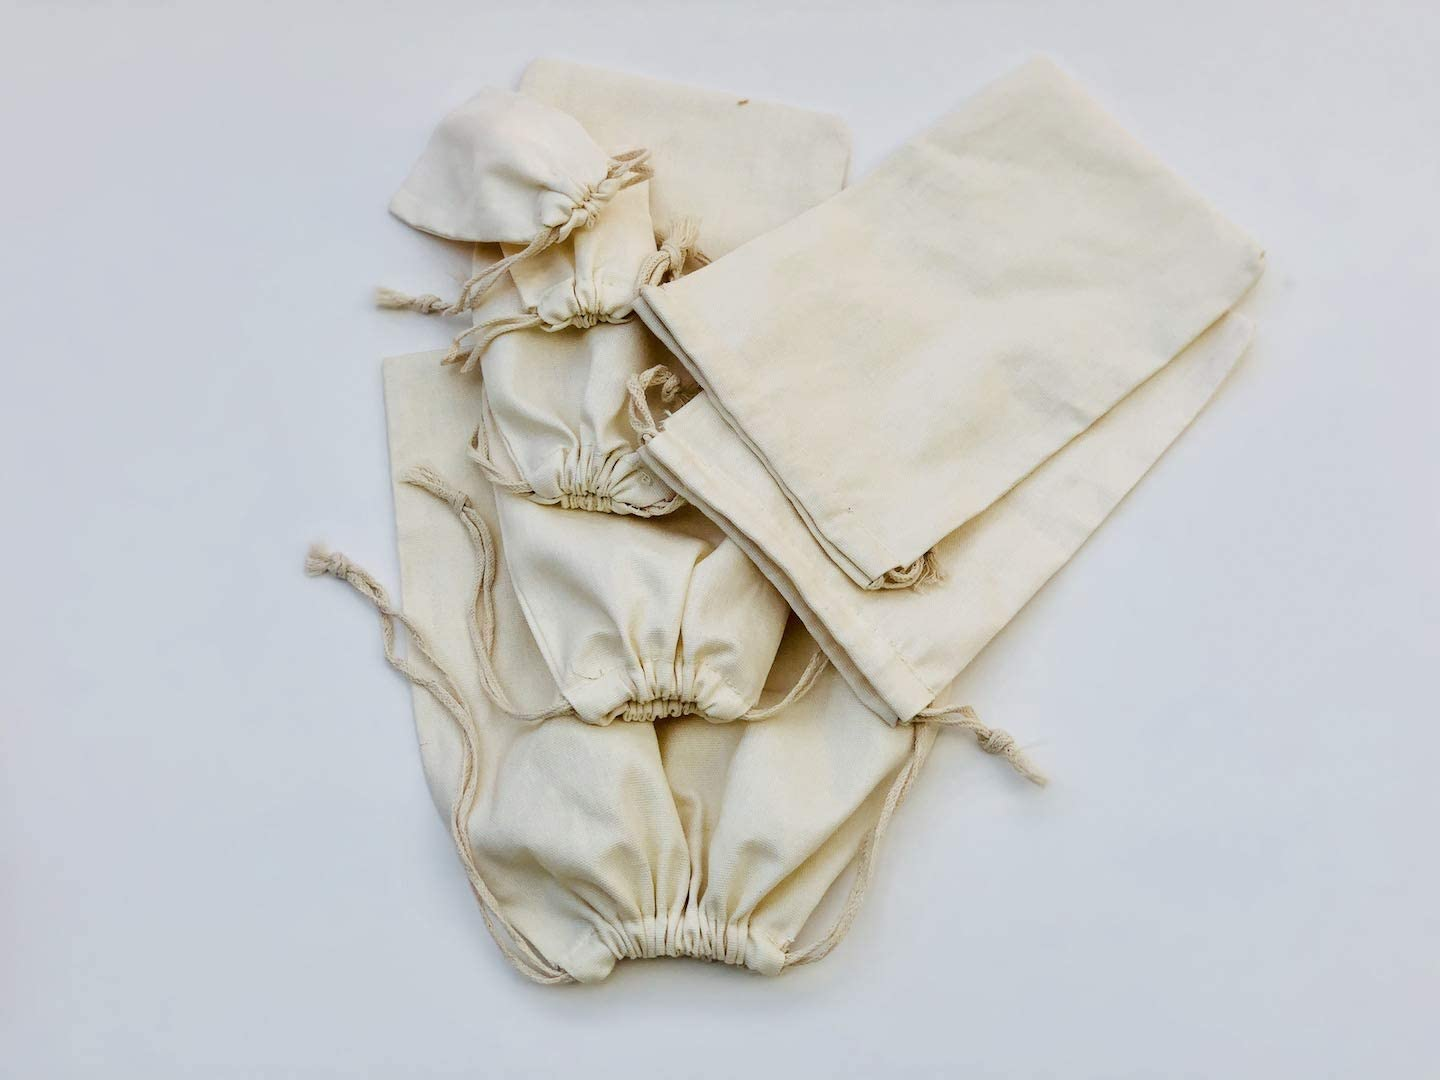 Cotton Double Drawstring Muslin Bag. 100% Organic Cotton. Pack of 100 (5 x 7 Inches)